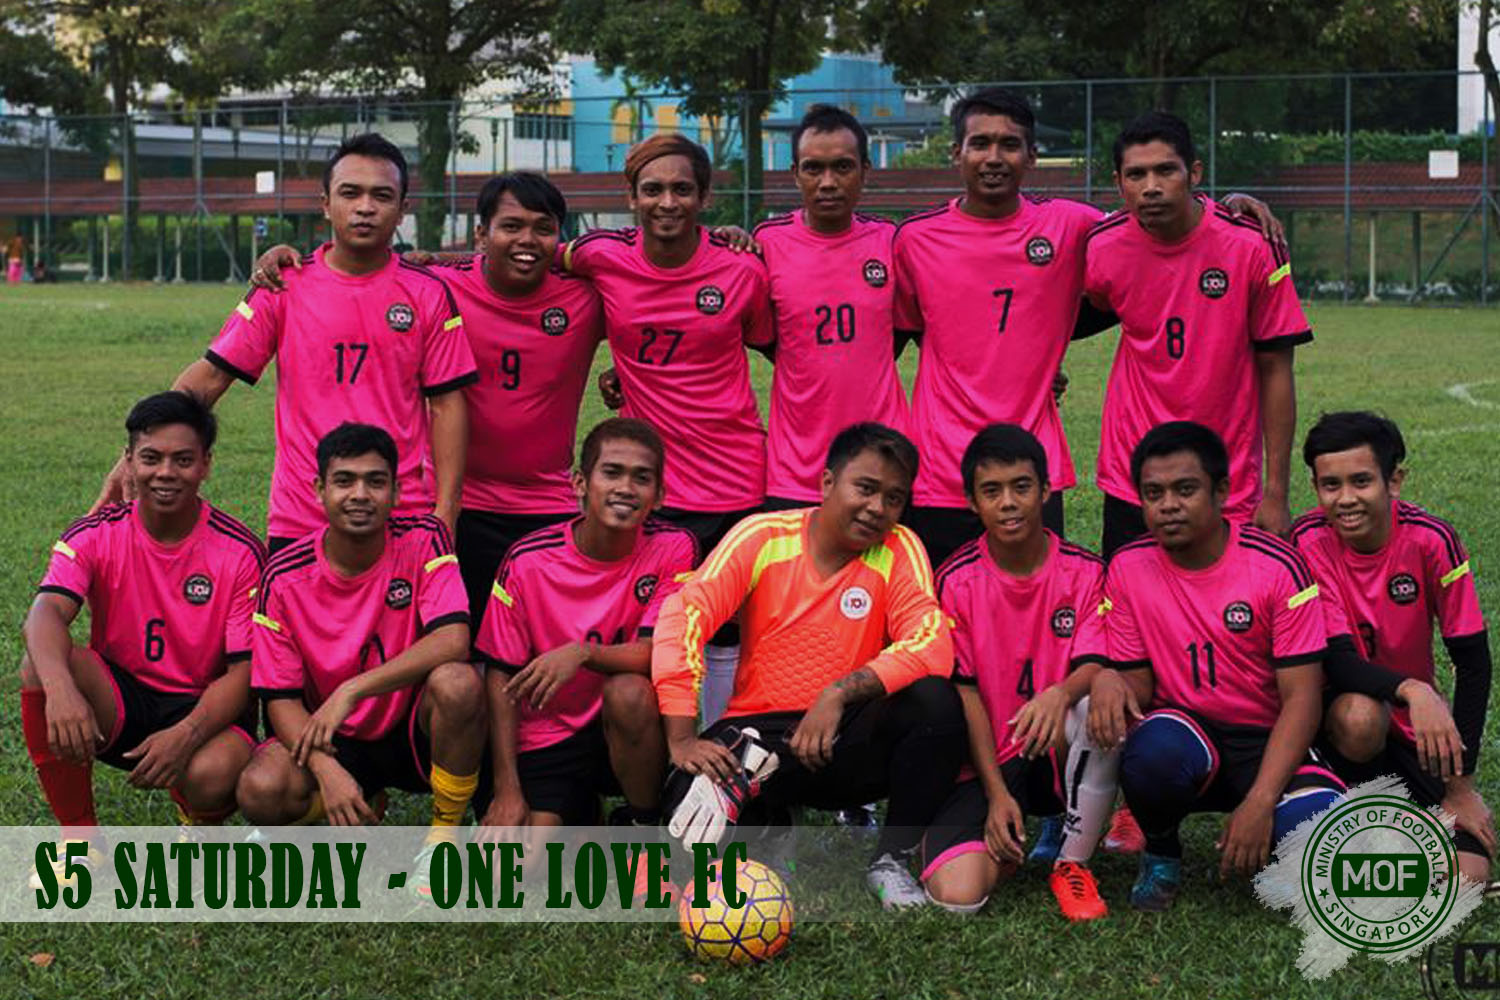 One Love FC